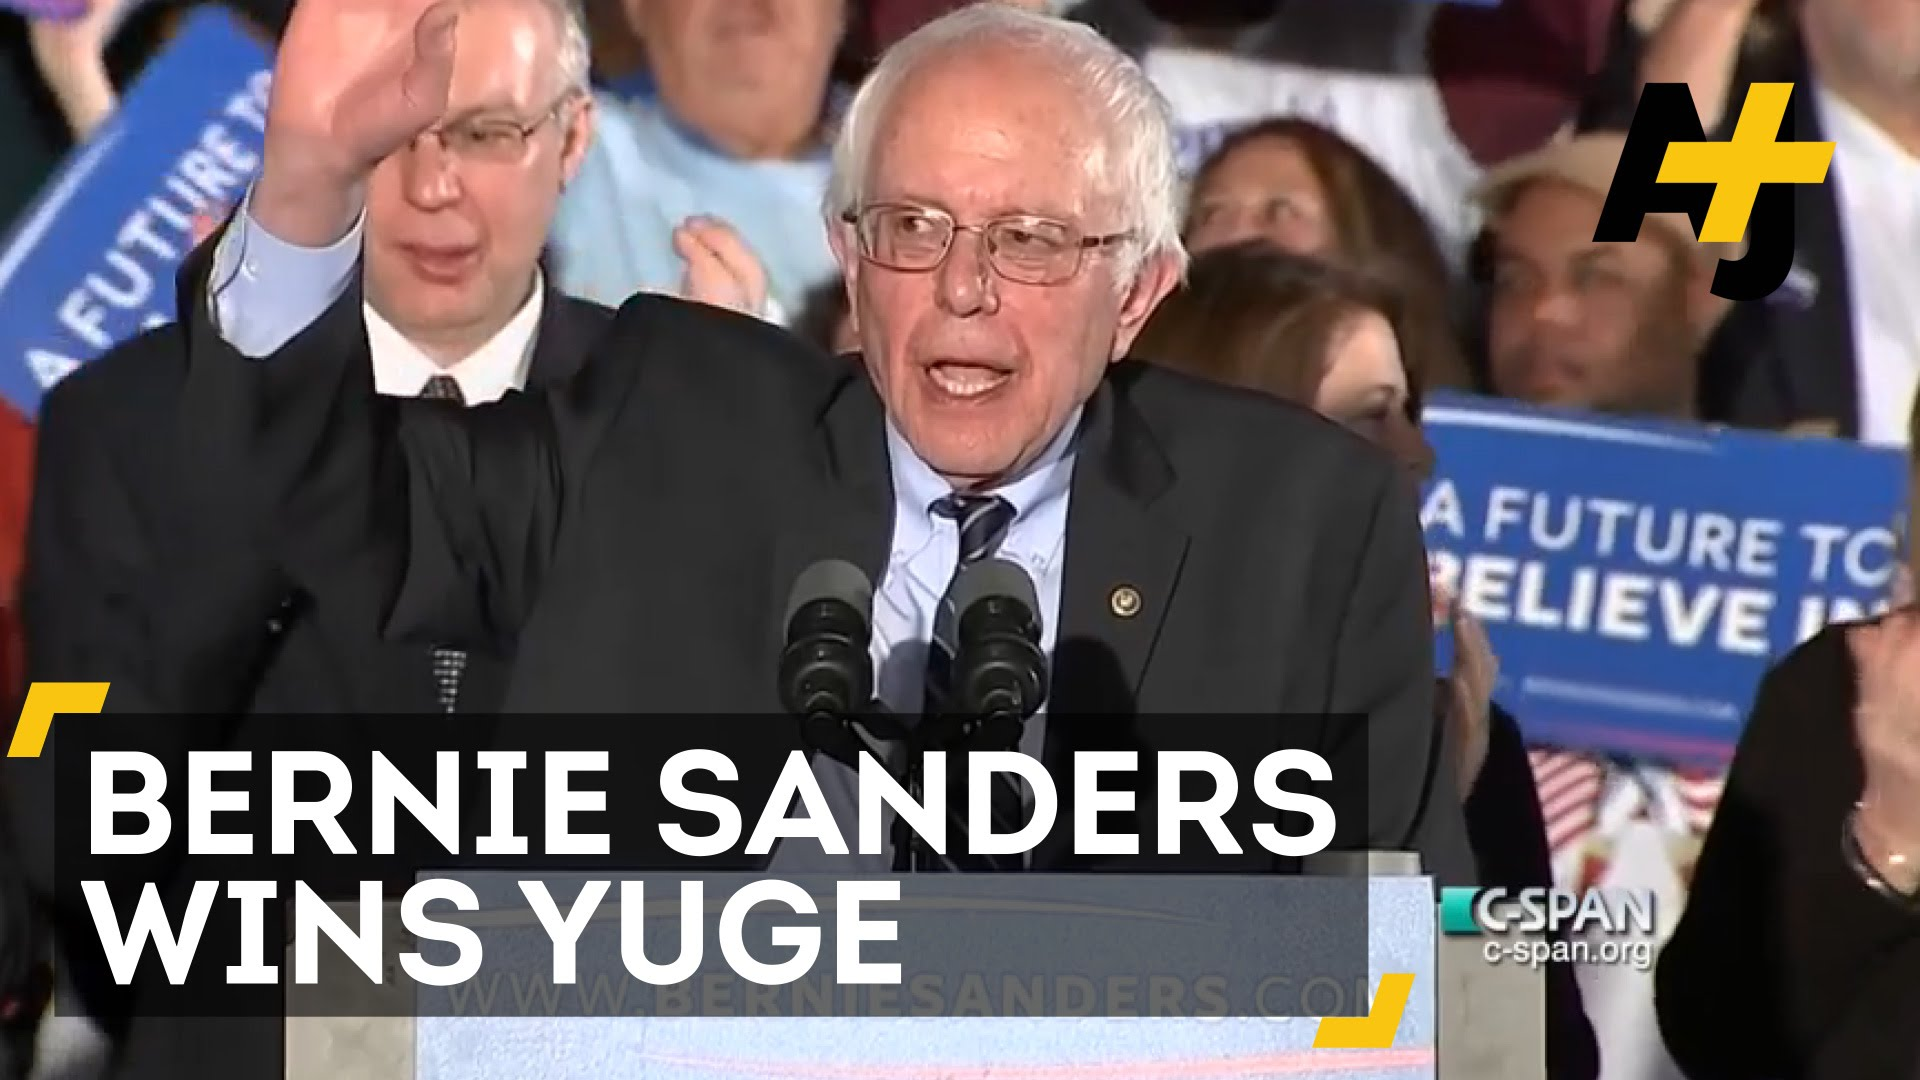 Bernie Sanders Just Crushed It In New Hampshire